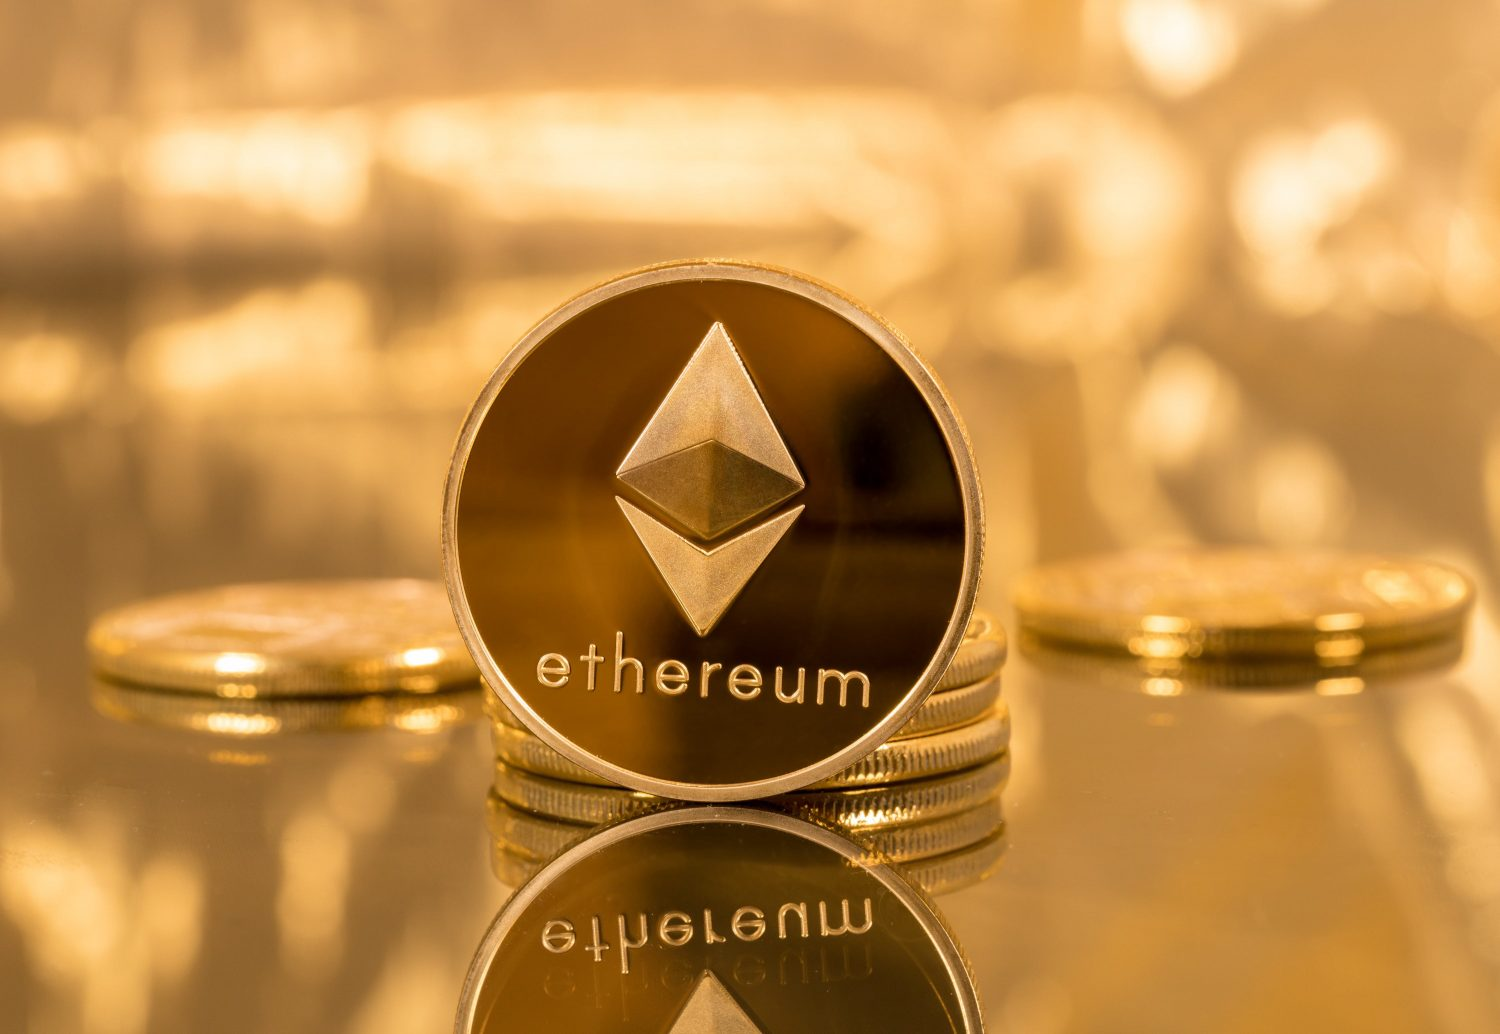 Vision Of Ethereum 2.0: Ethereum In The Past.